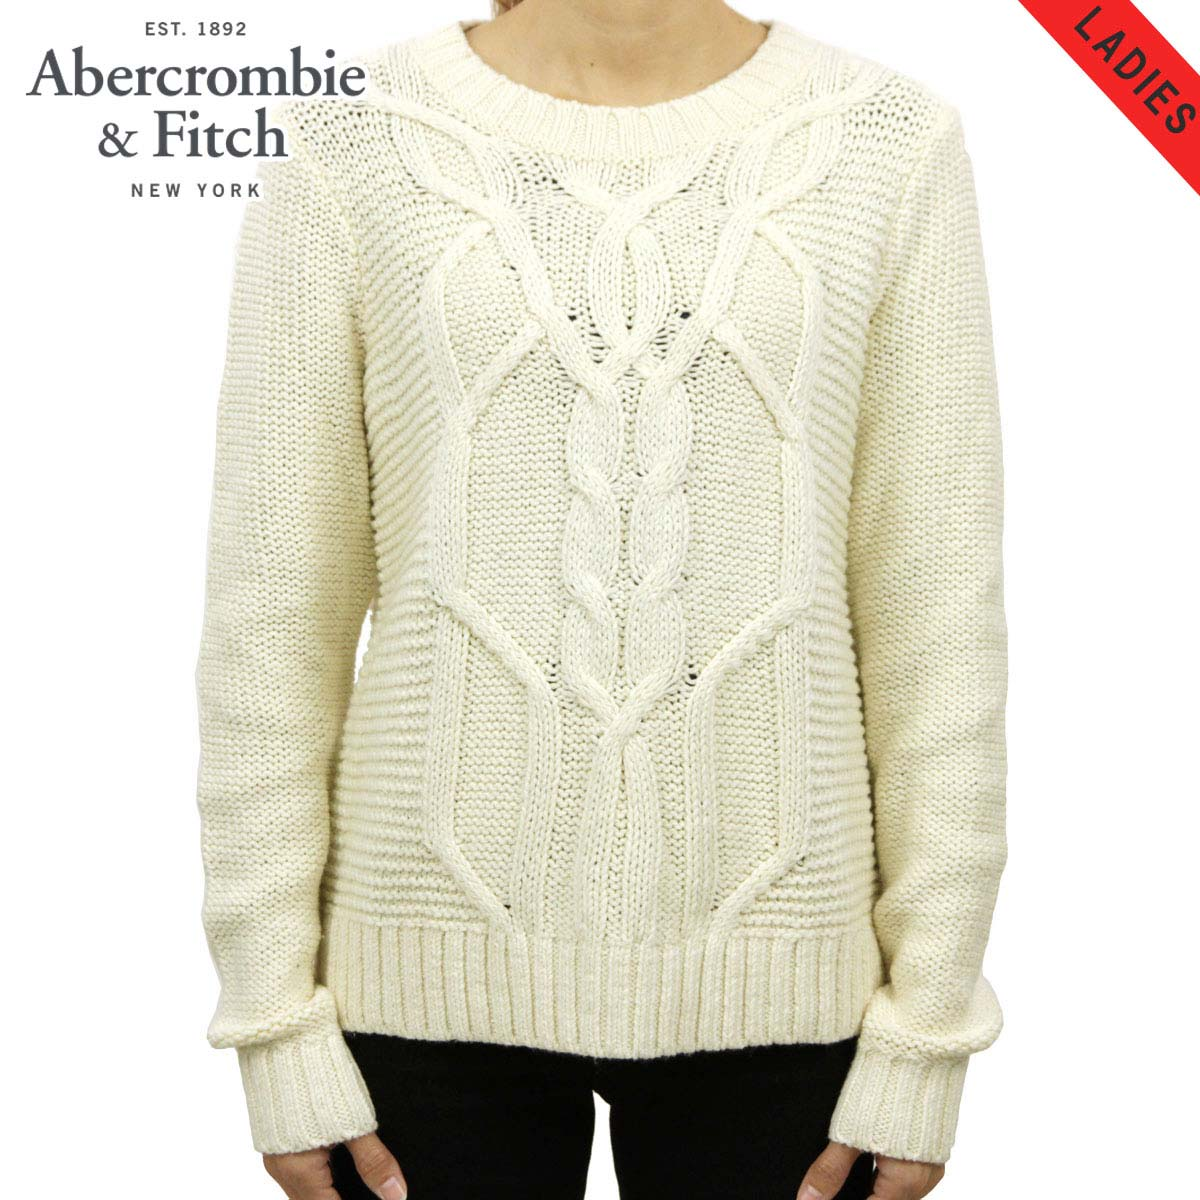 15%OFFセール 【販売期間 12/4 20:00~12/11 1:59】 アバクロ Abercrombie&Fitch 正規品 レディース セーター CABLE KNIT SWEATER 150-490-0800-100 D00S20